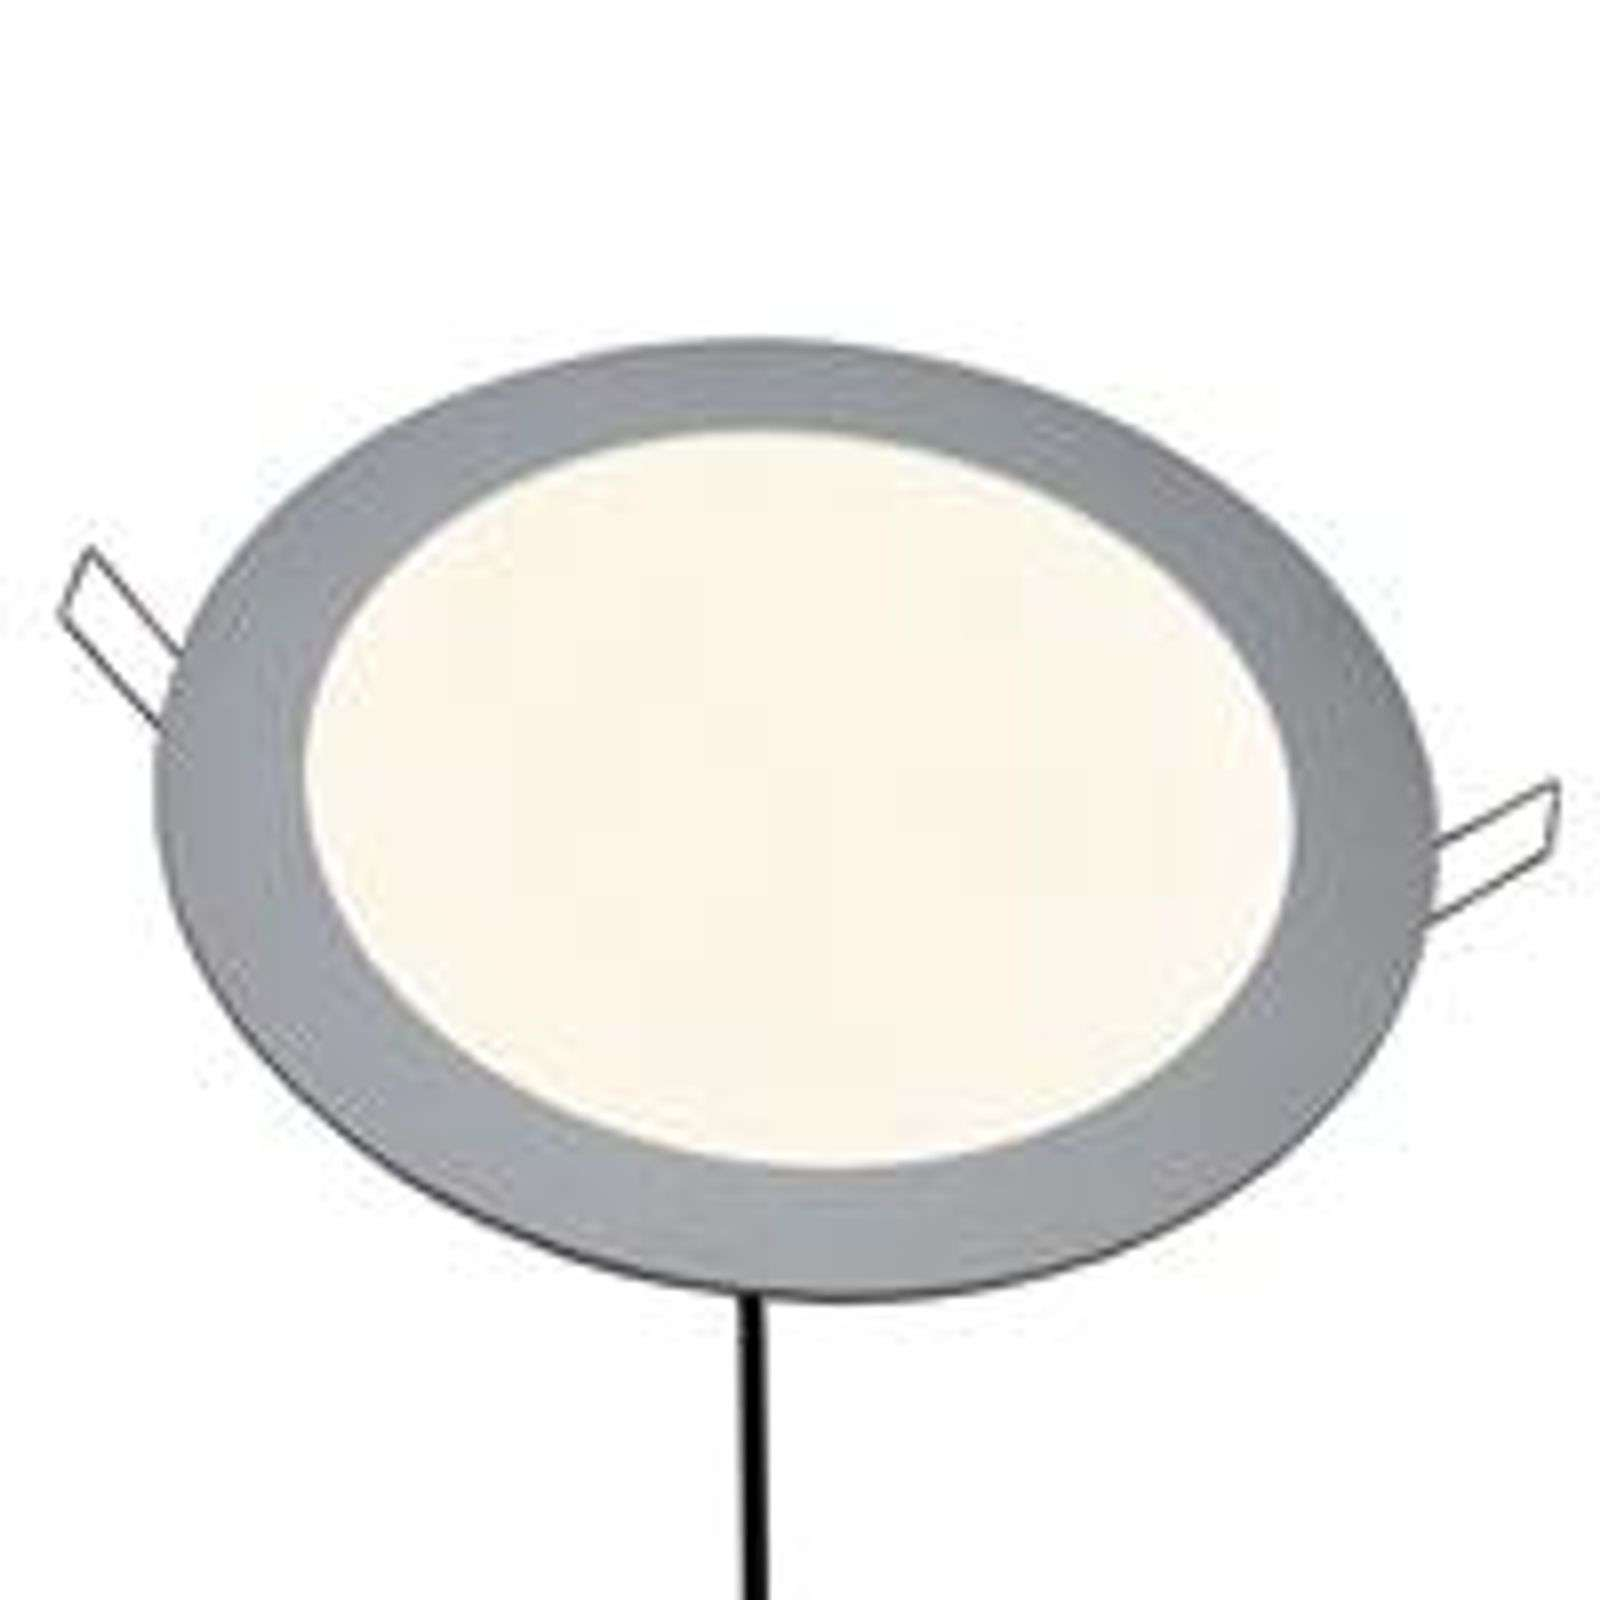 Spot encastrable LED Sidonie, rond, blanc chaud